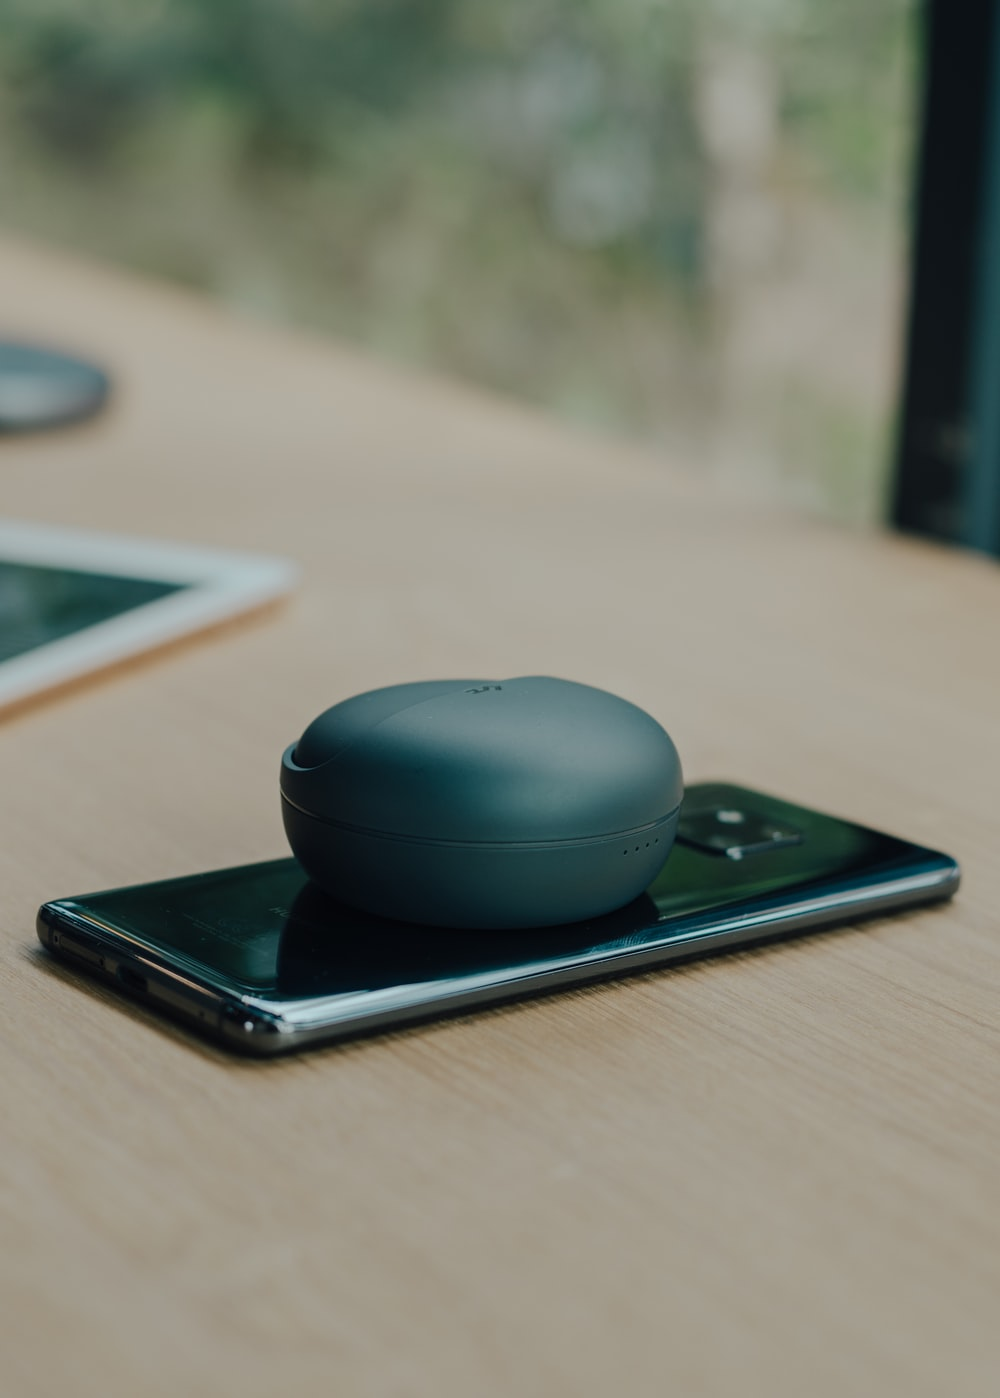 round black wireless portable speaker on Android smartphone